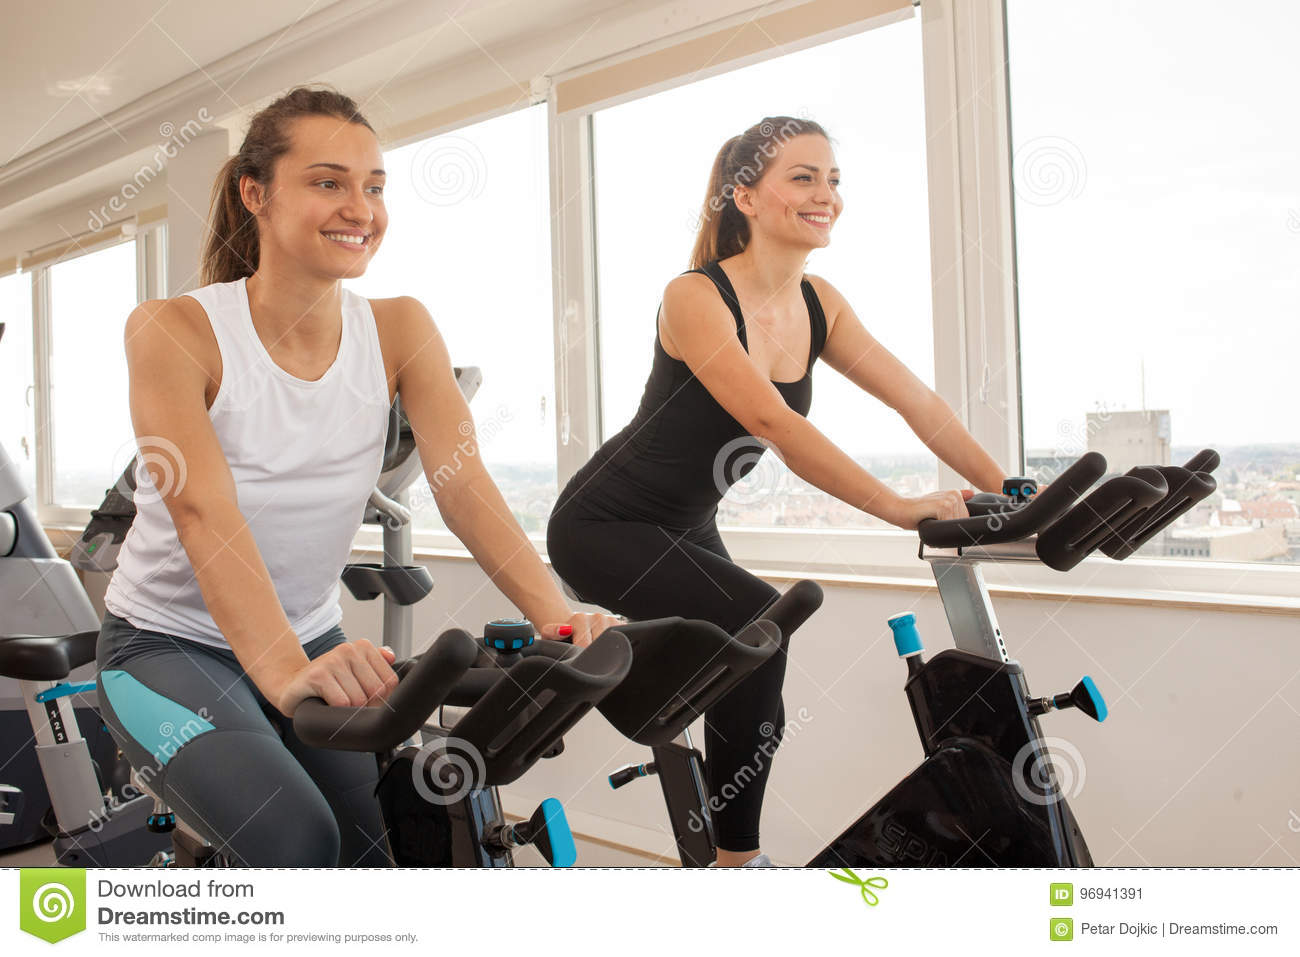 Young woman biking in the gym, exercising legs doing cardio wor